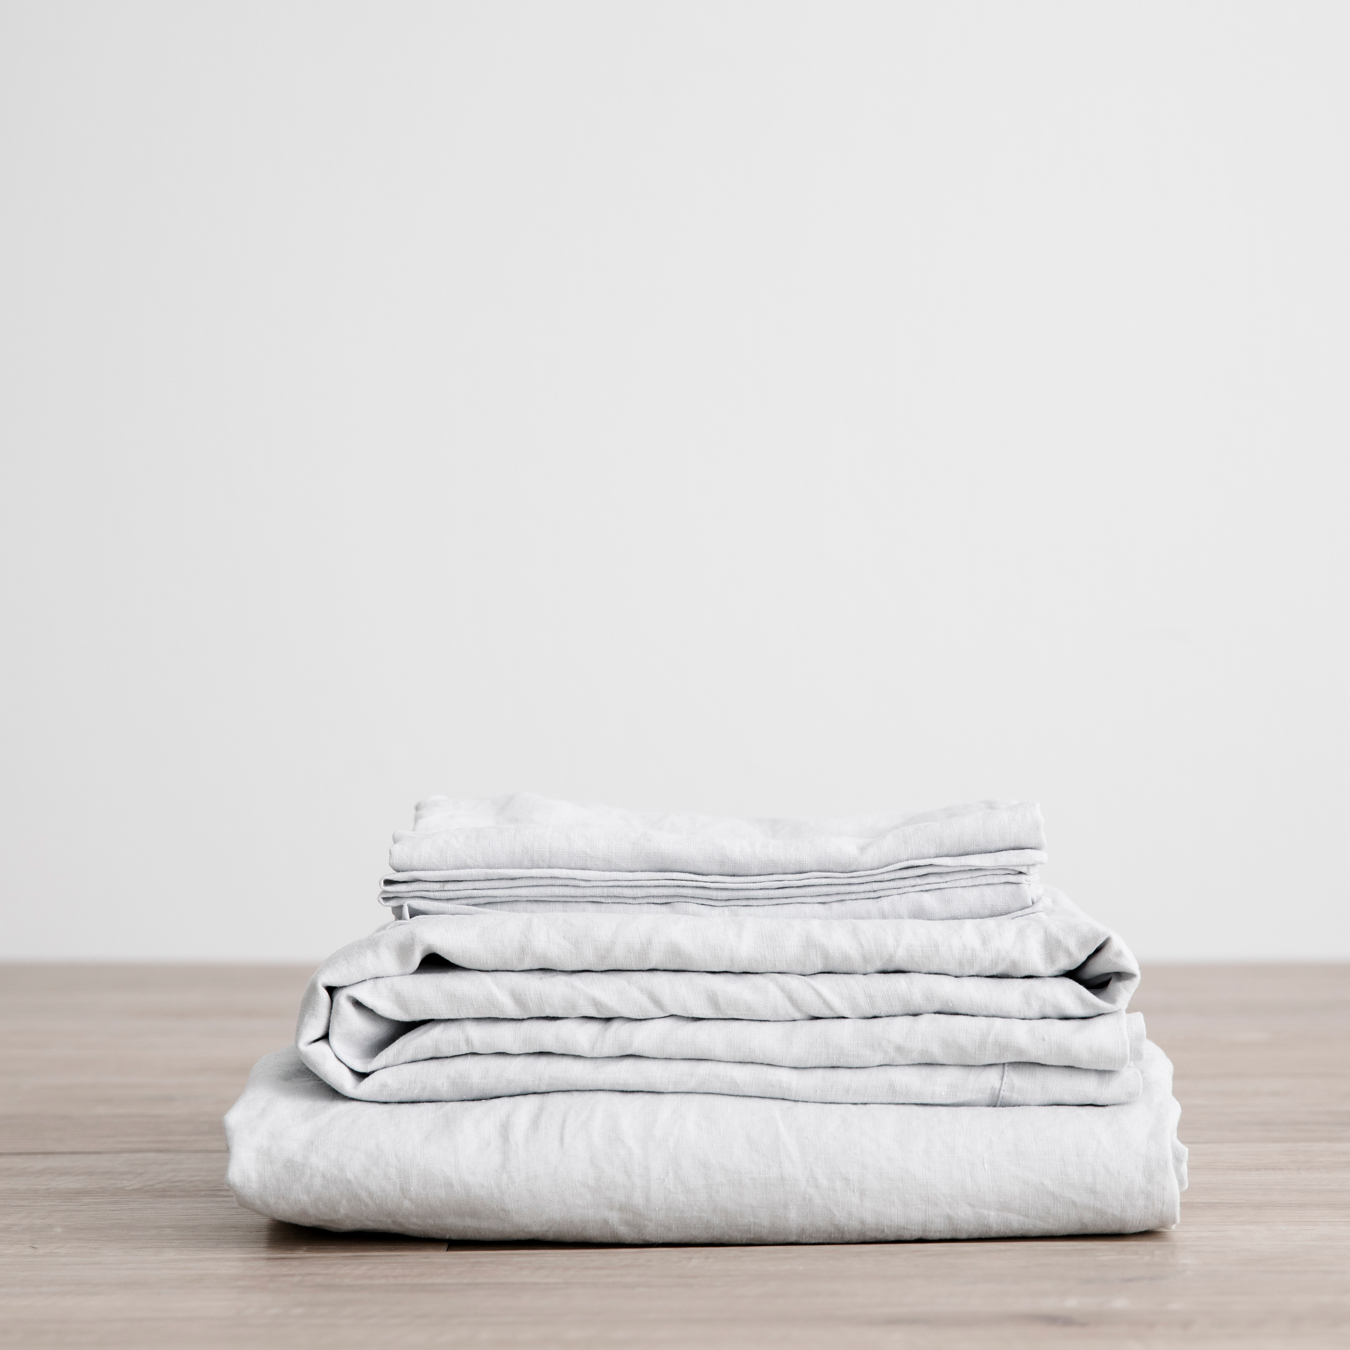 King Linen Sheet Set with Pillowcases Ice Blue